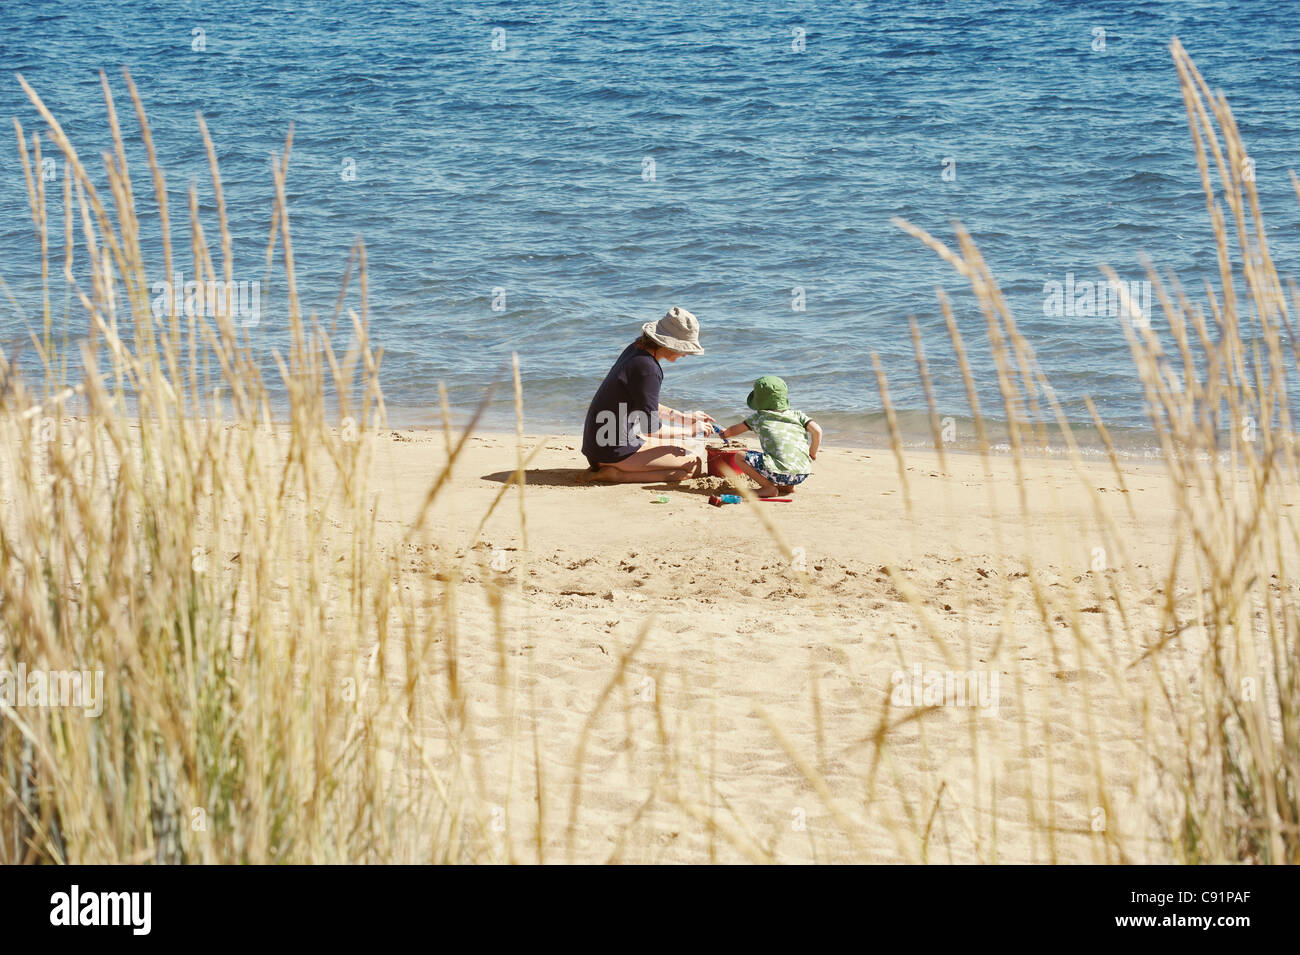 Mother and child playing on beach - Stock Image